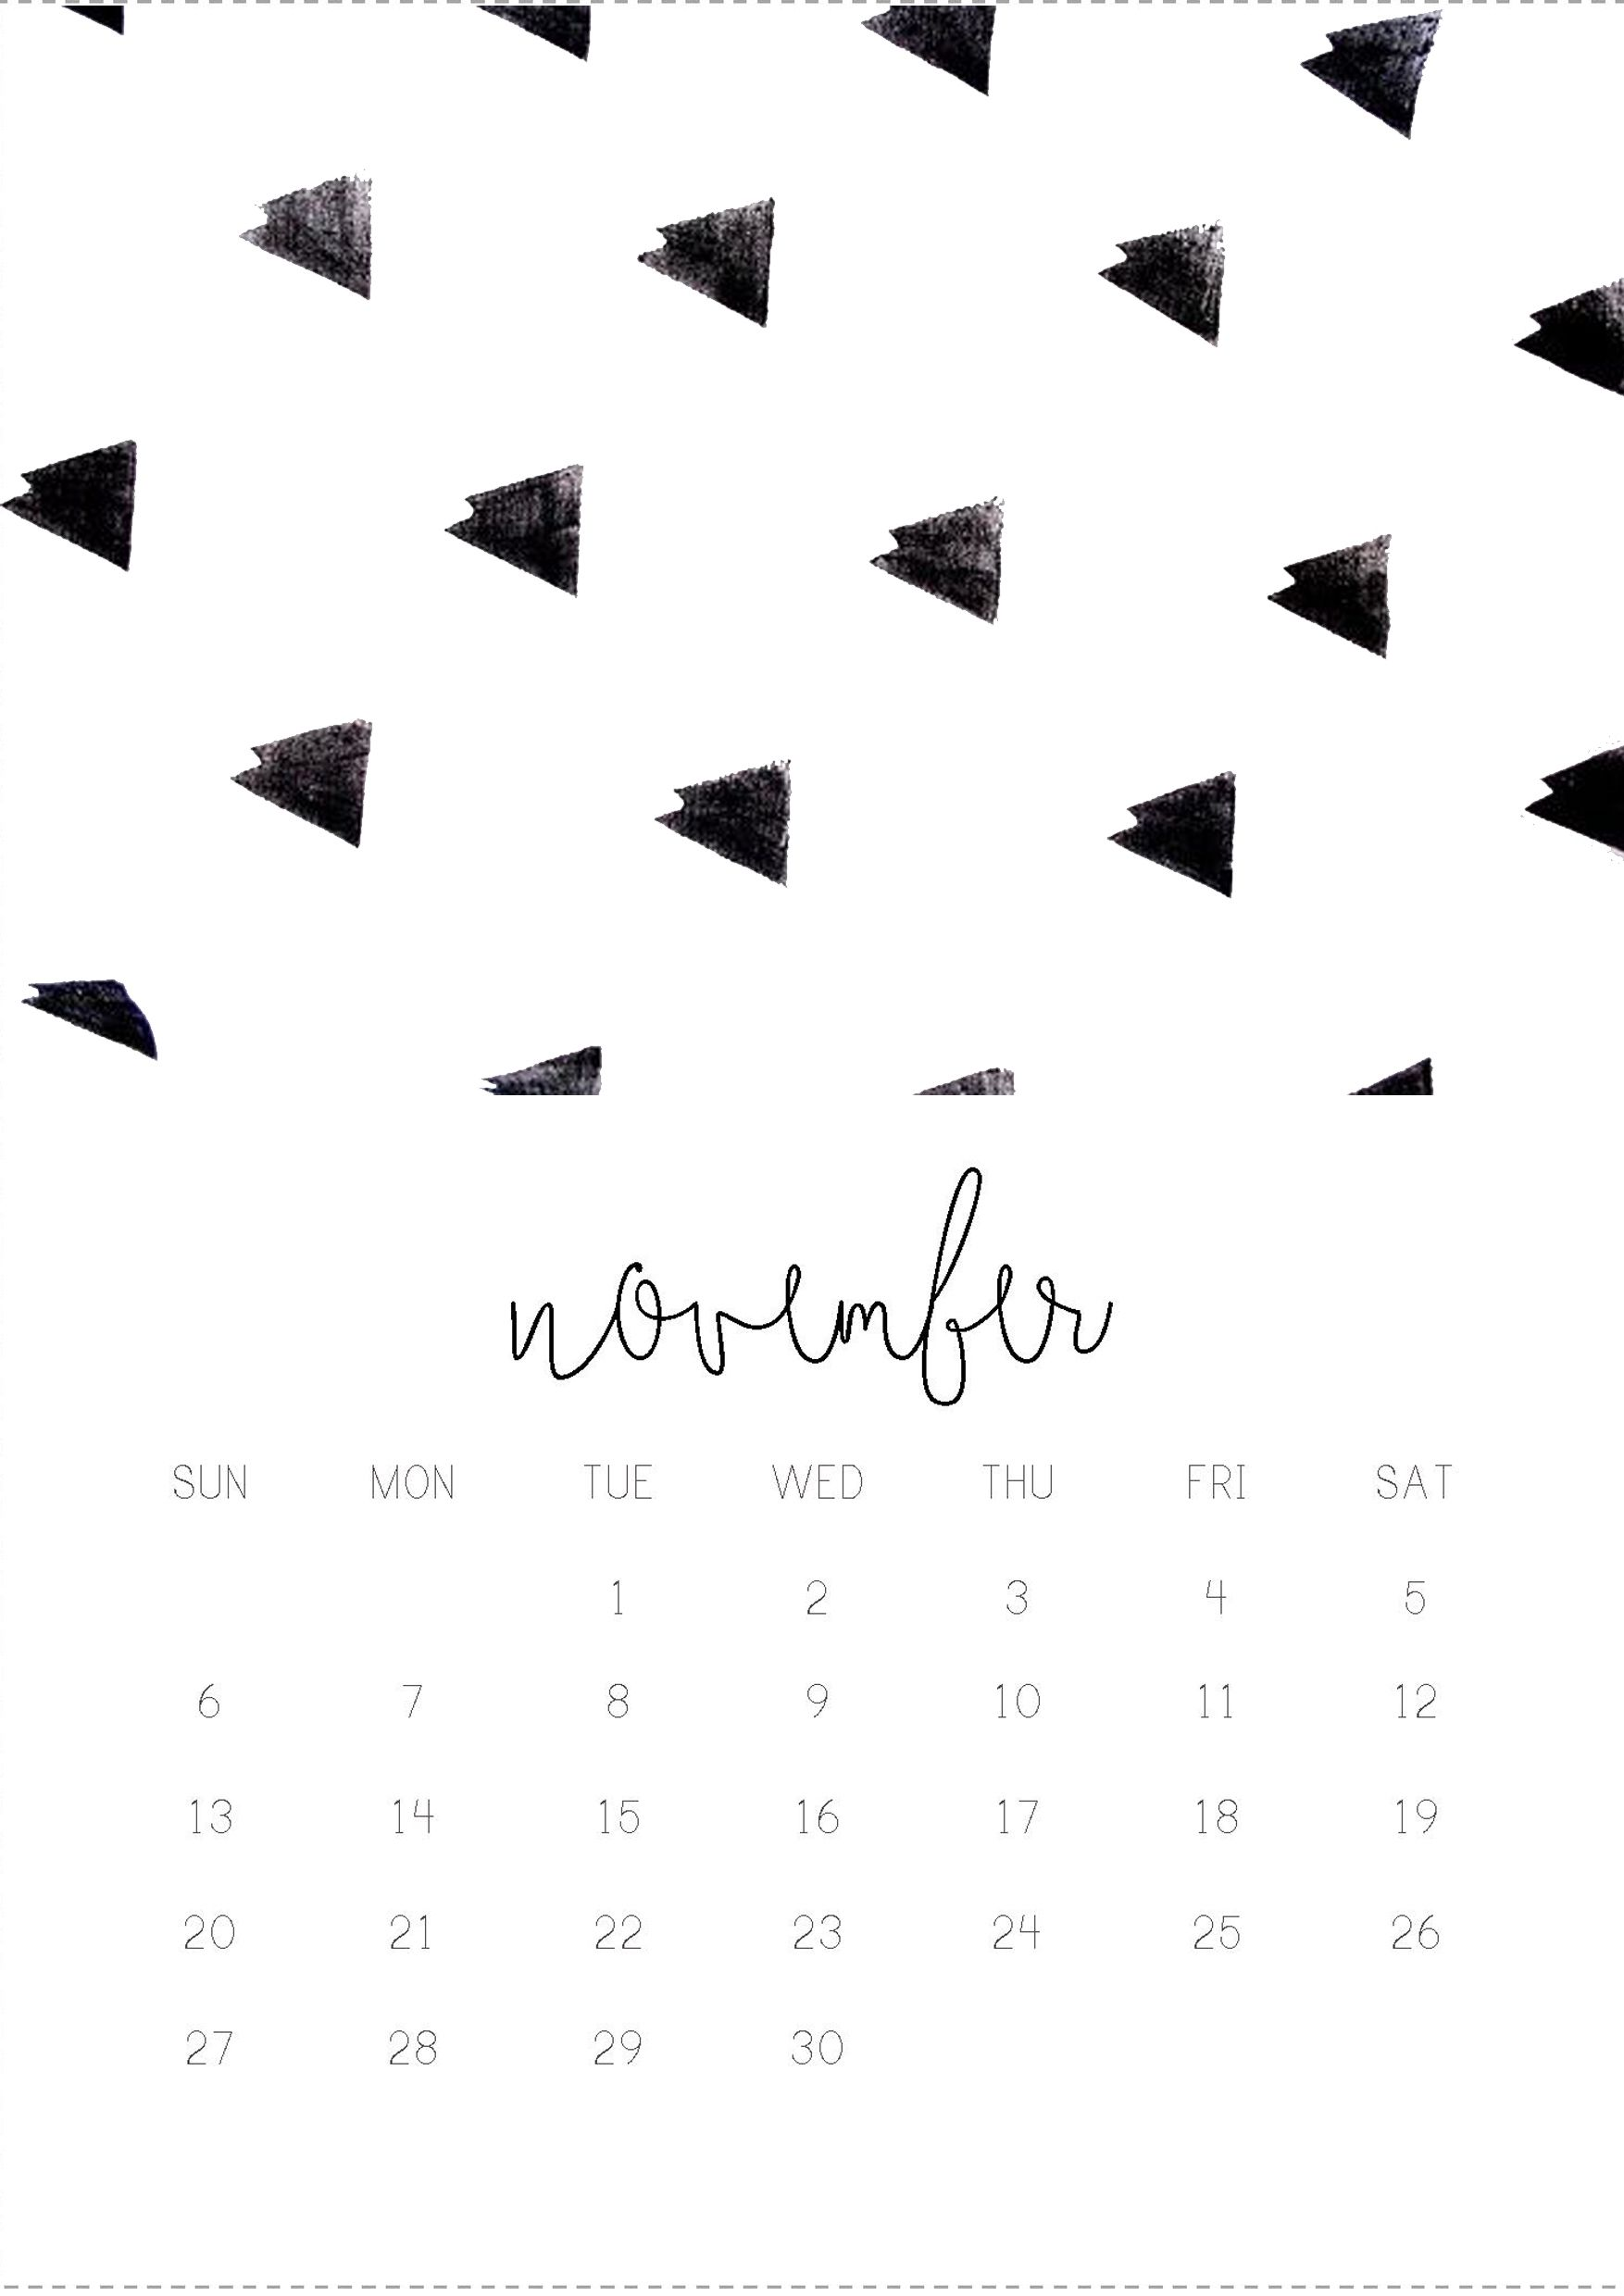 11/12 November monthly 2016 calendar printable, collage